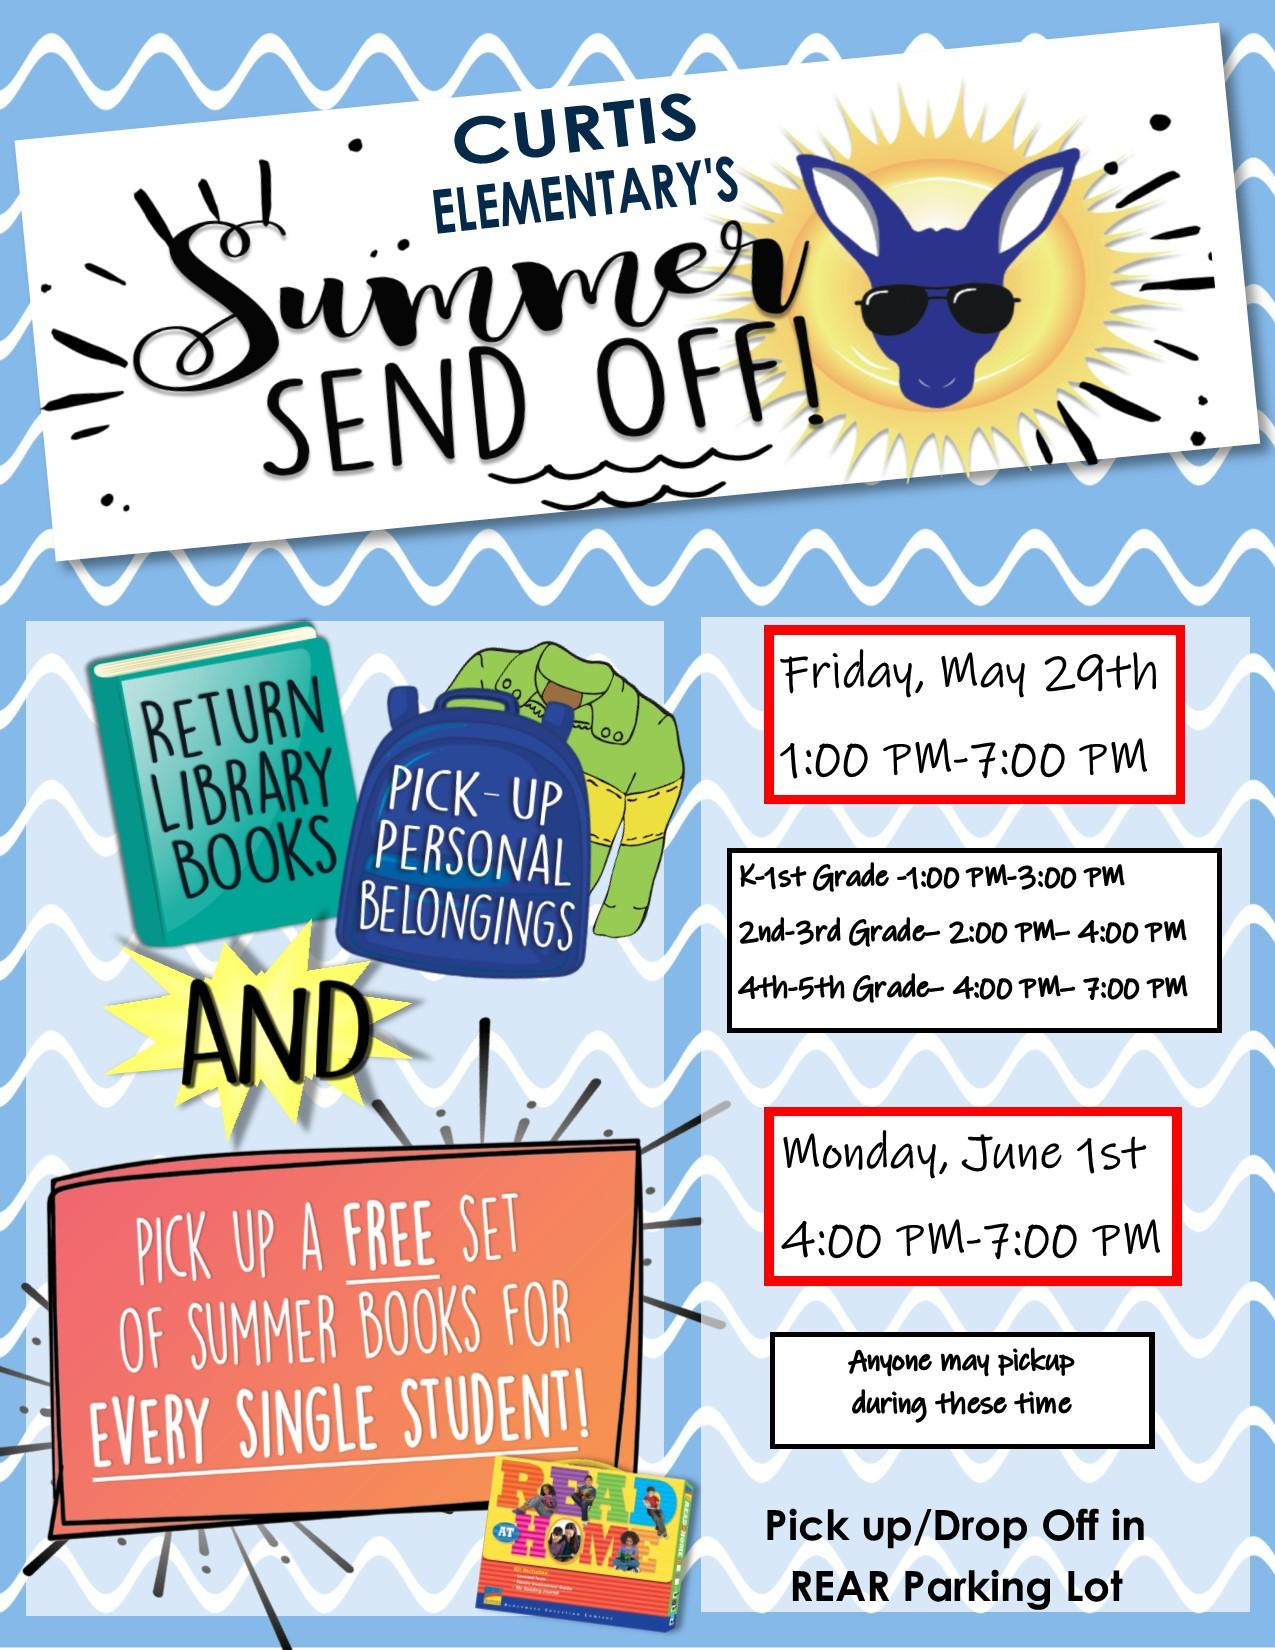 Summer Send Off Flyer